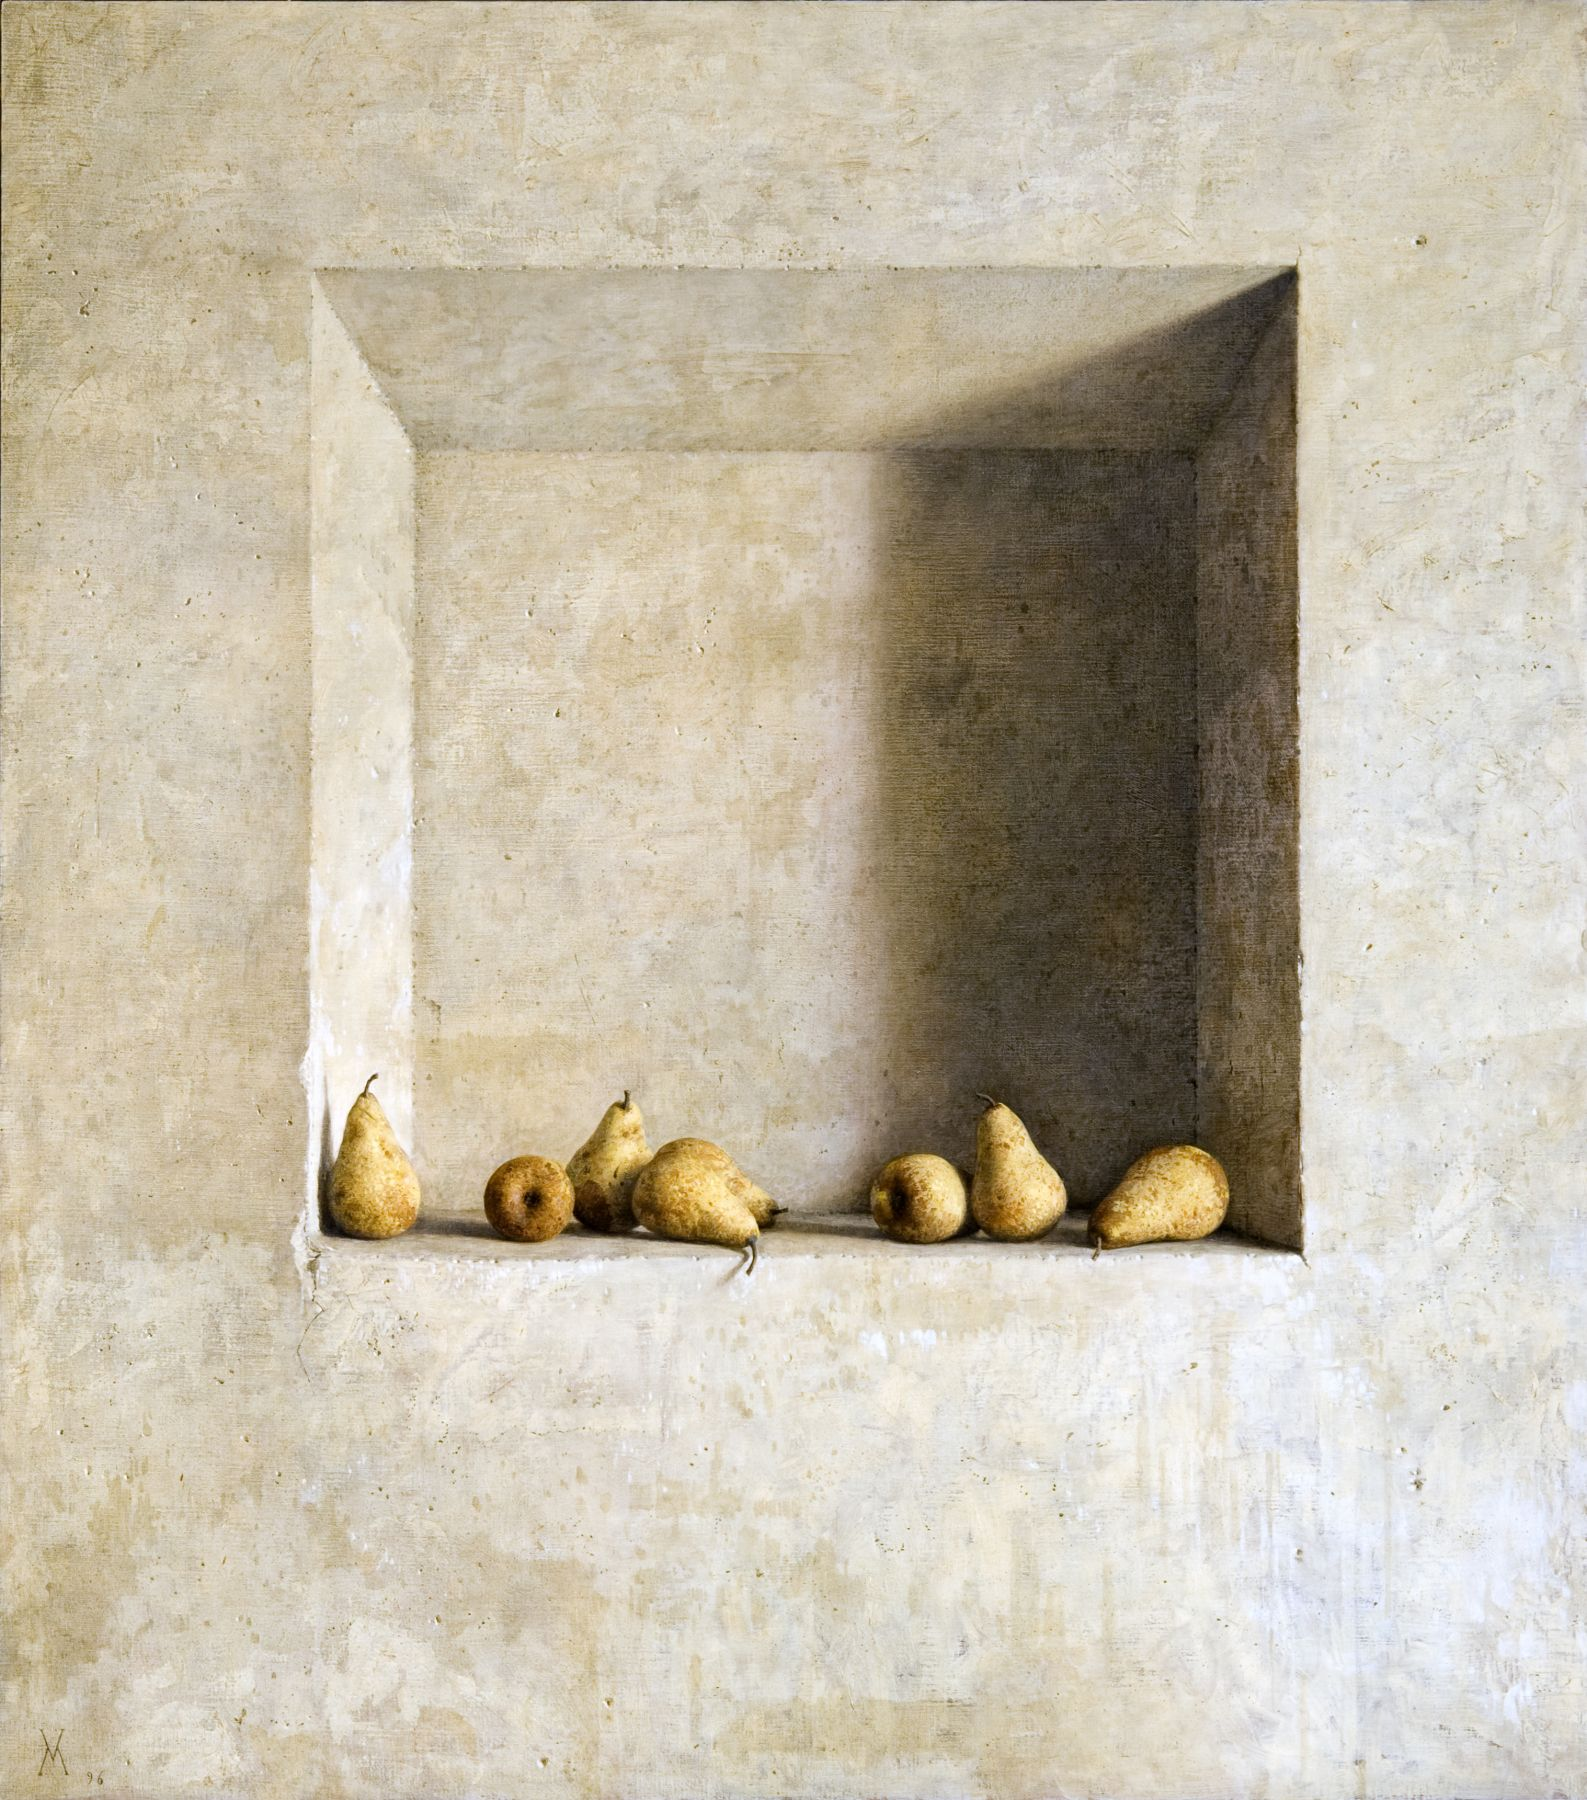 guillermo munoz vera, Peras Amarillas, 1996, oil on canvas mounted on wood, 54 3/8 x 48 inches